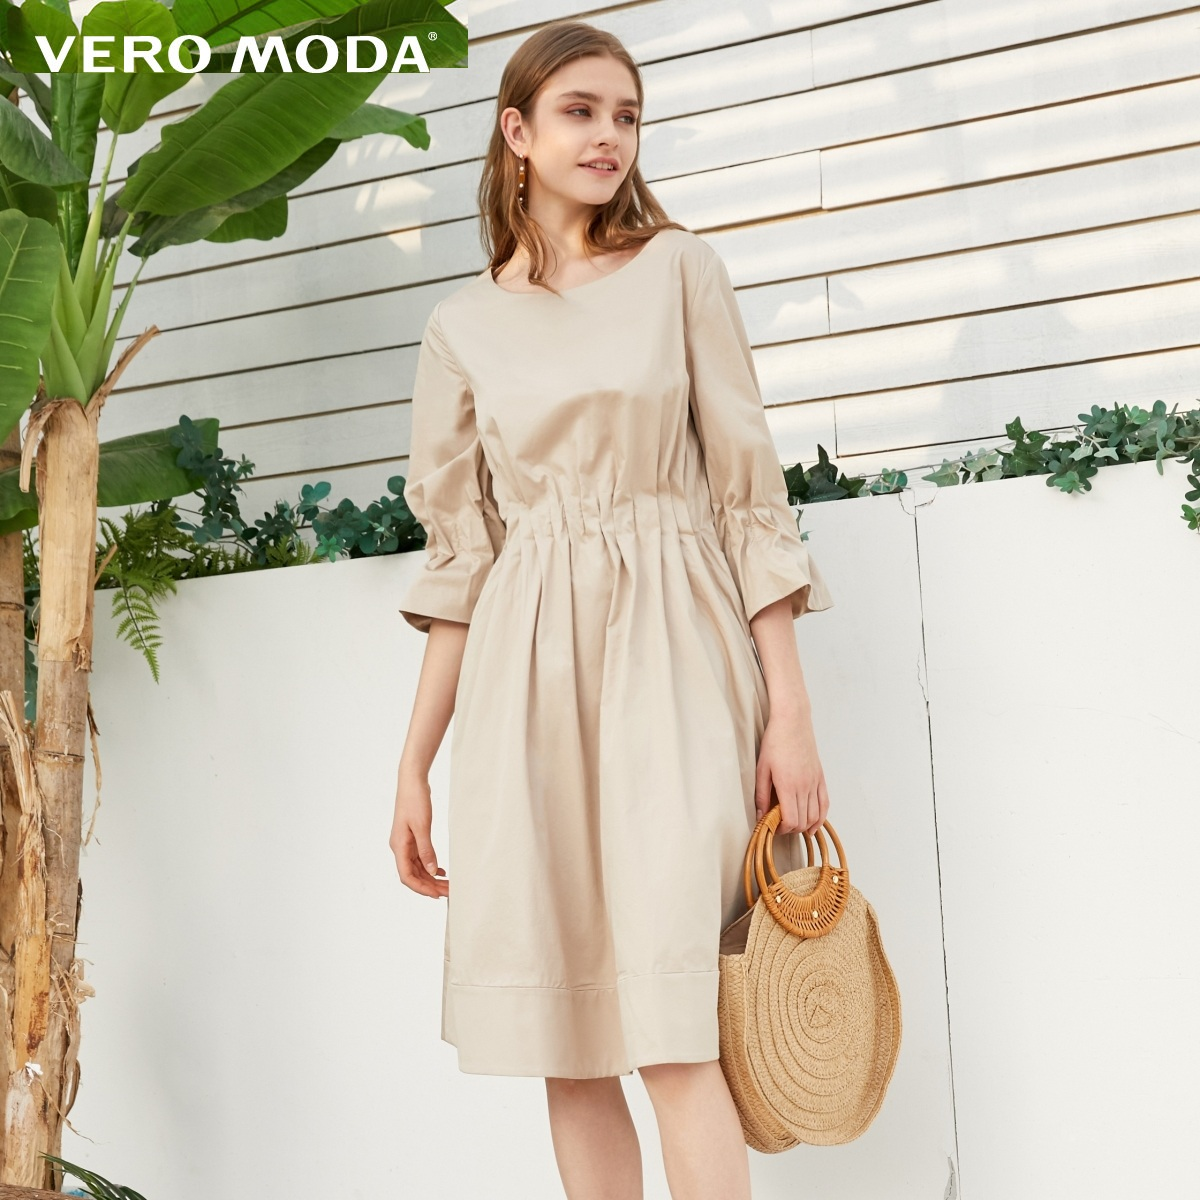 Vero Moda 100% Cotton Elasticized Waist Pure Color Dress | 31916Z512